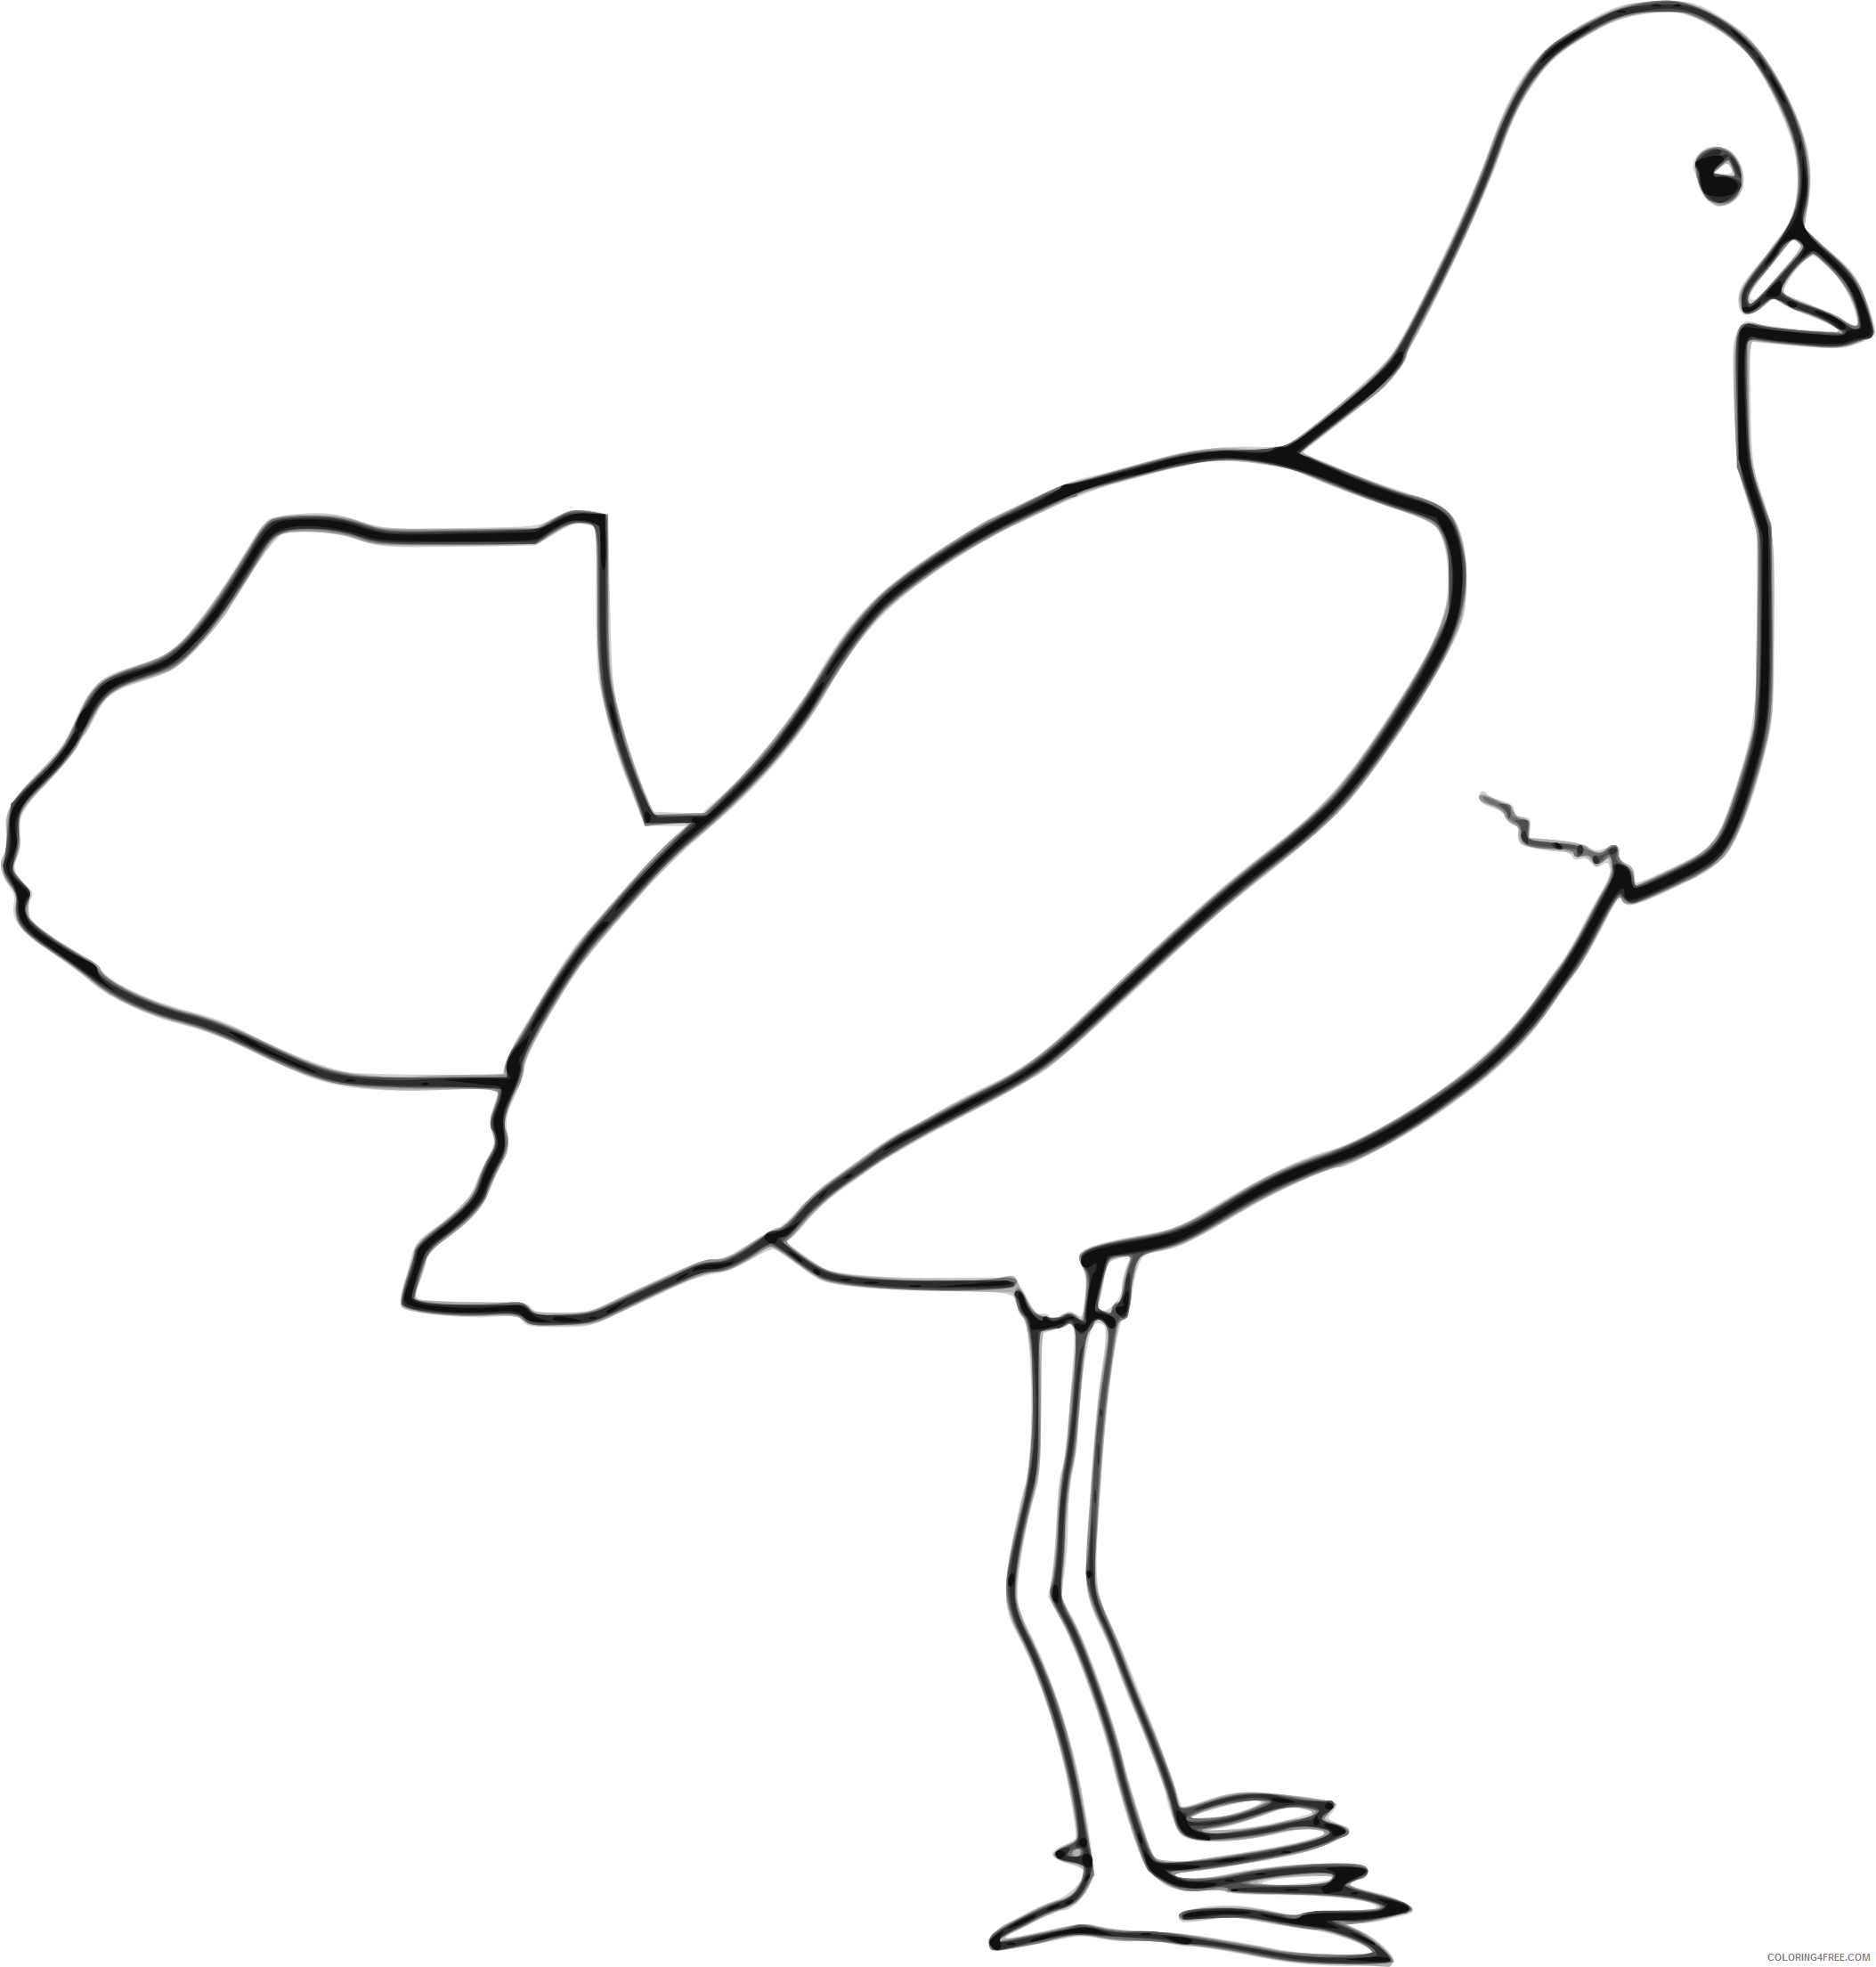 Bird Coloring Pages birdoutline bpng Printable Coloring4free